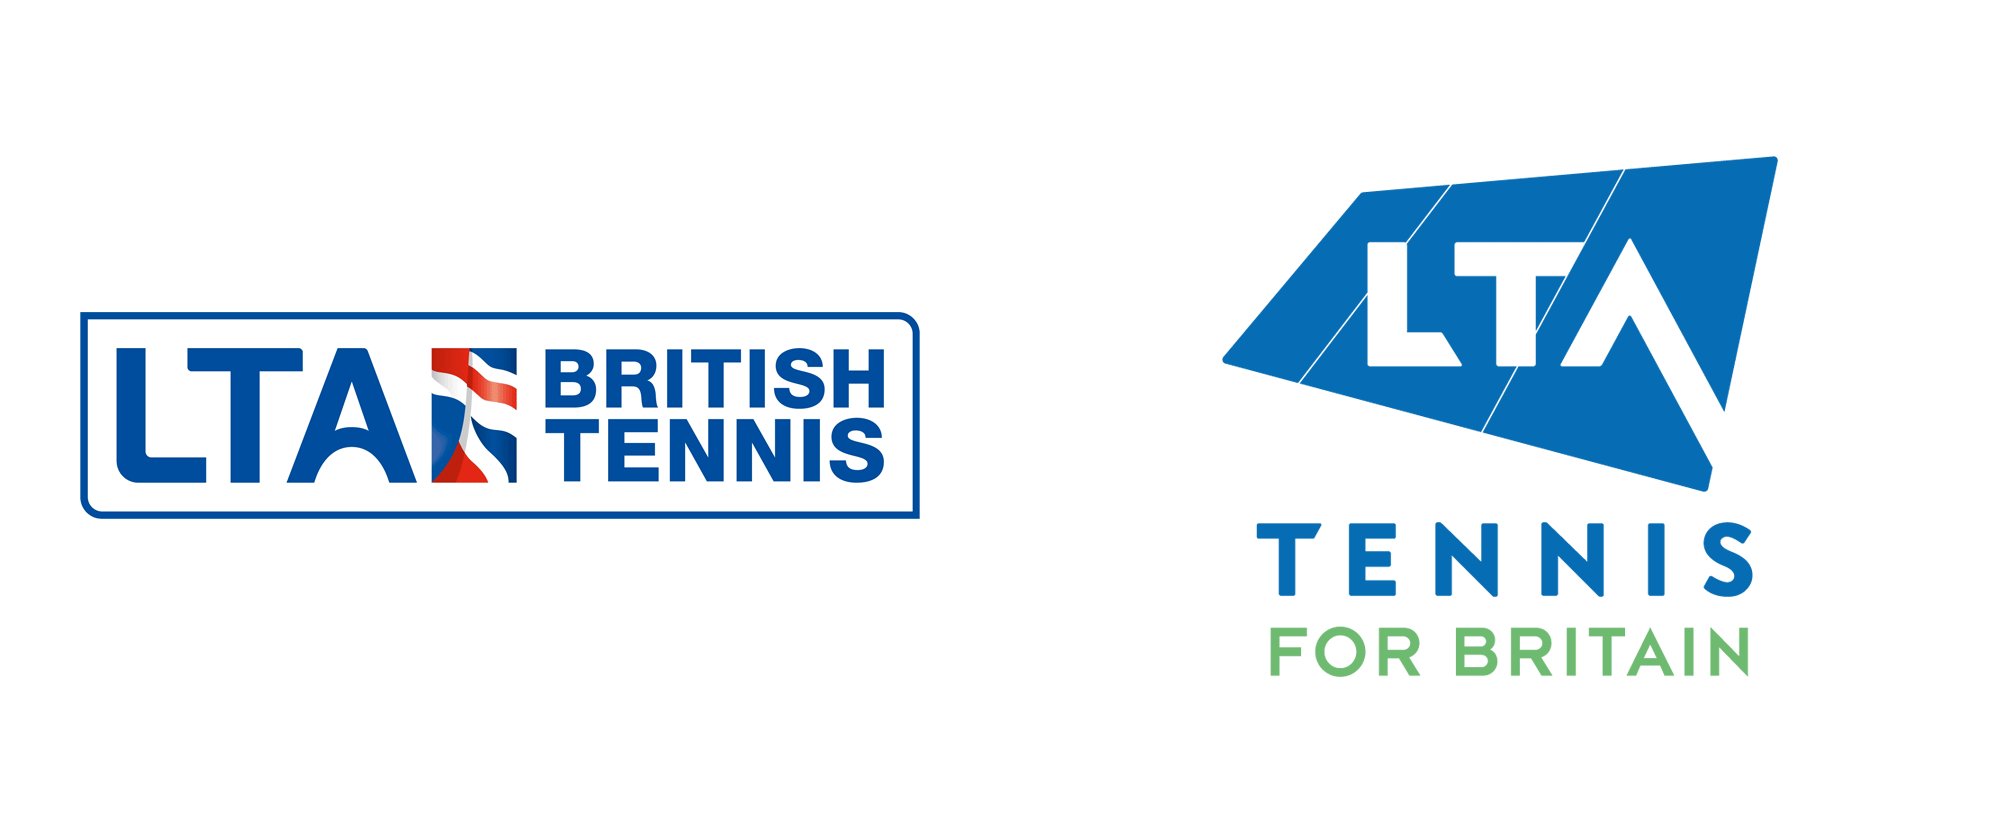 New Logo for Lawn Tennis Association